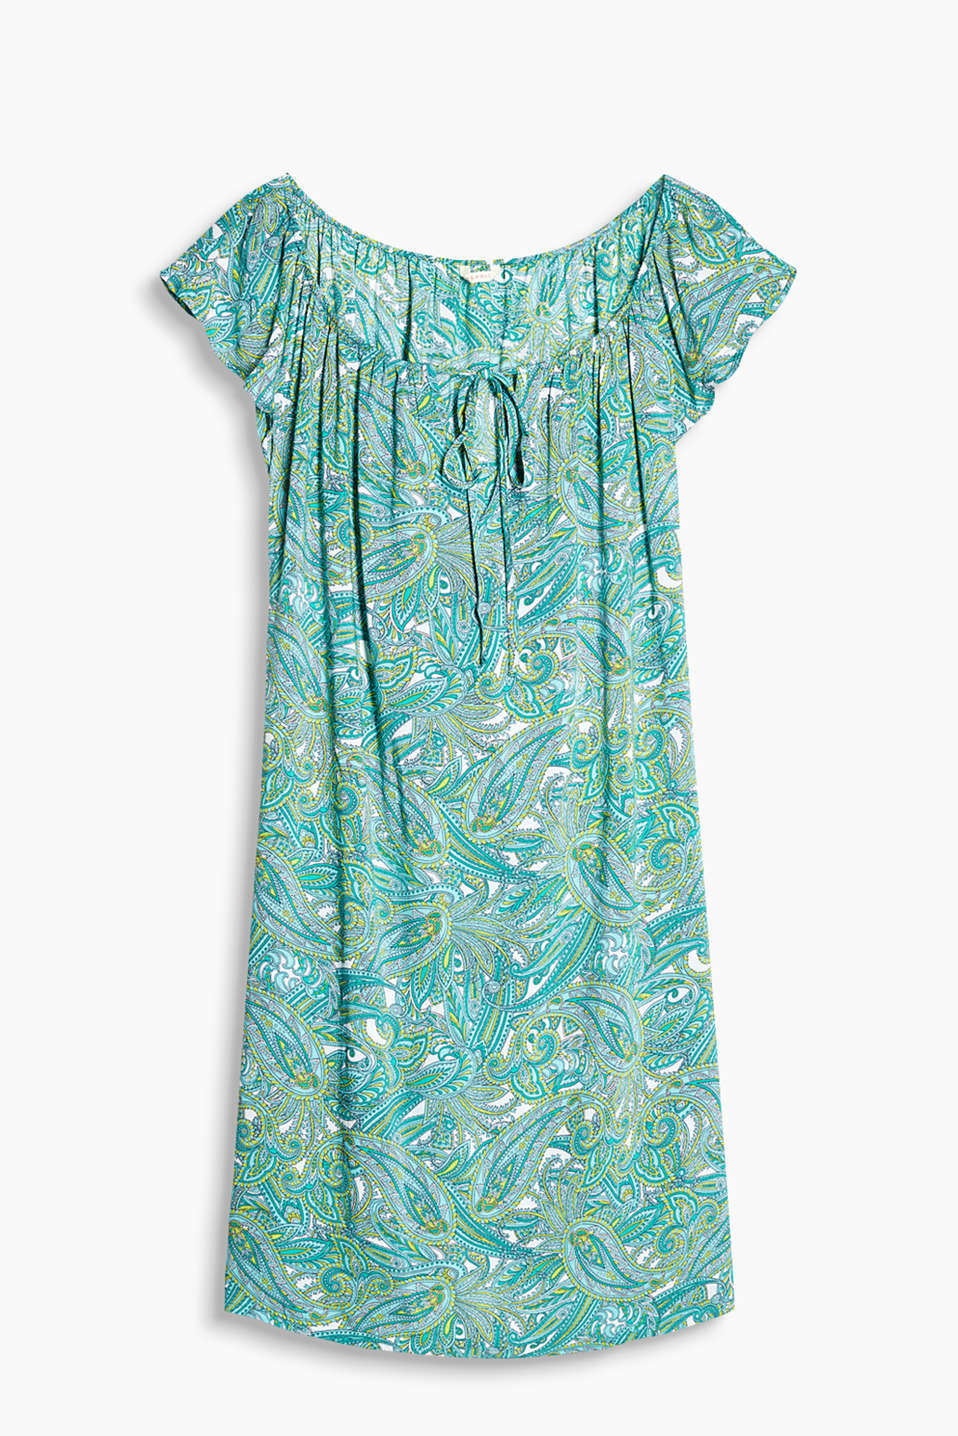 Collection: DORNER - Tunic style dress with a Carmen neckline, decorative paisley print and a tie-around belt